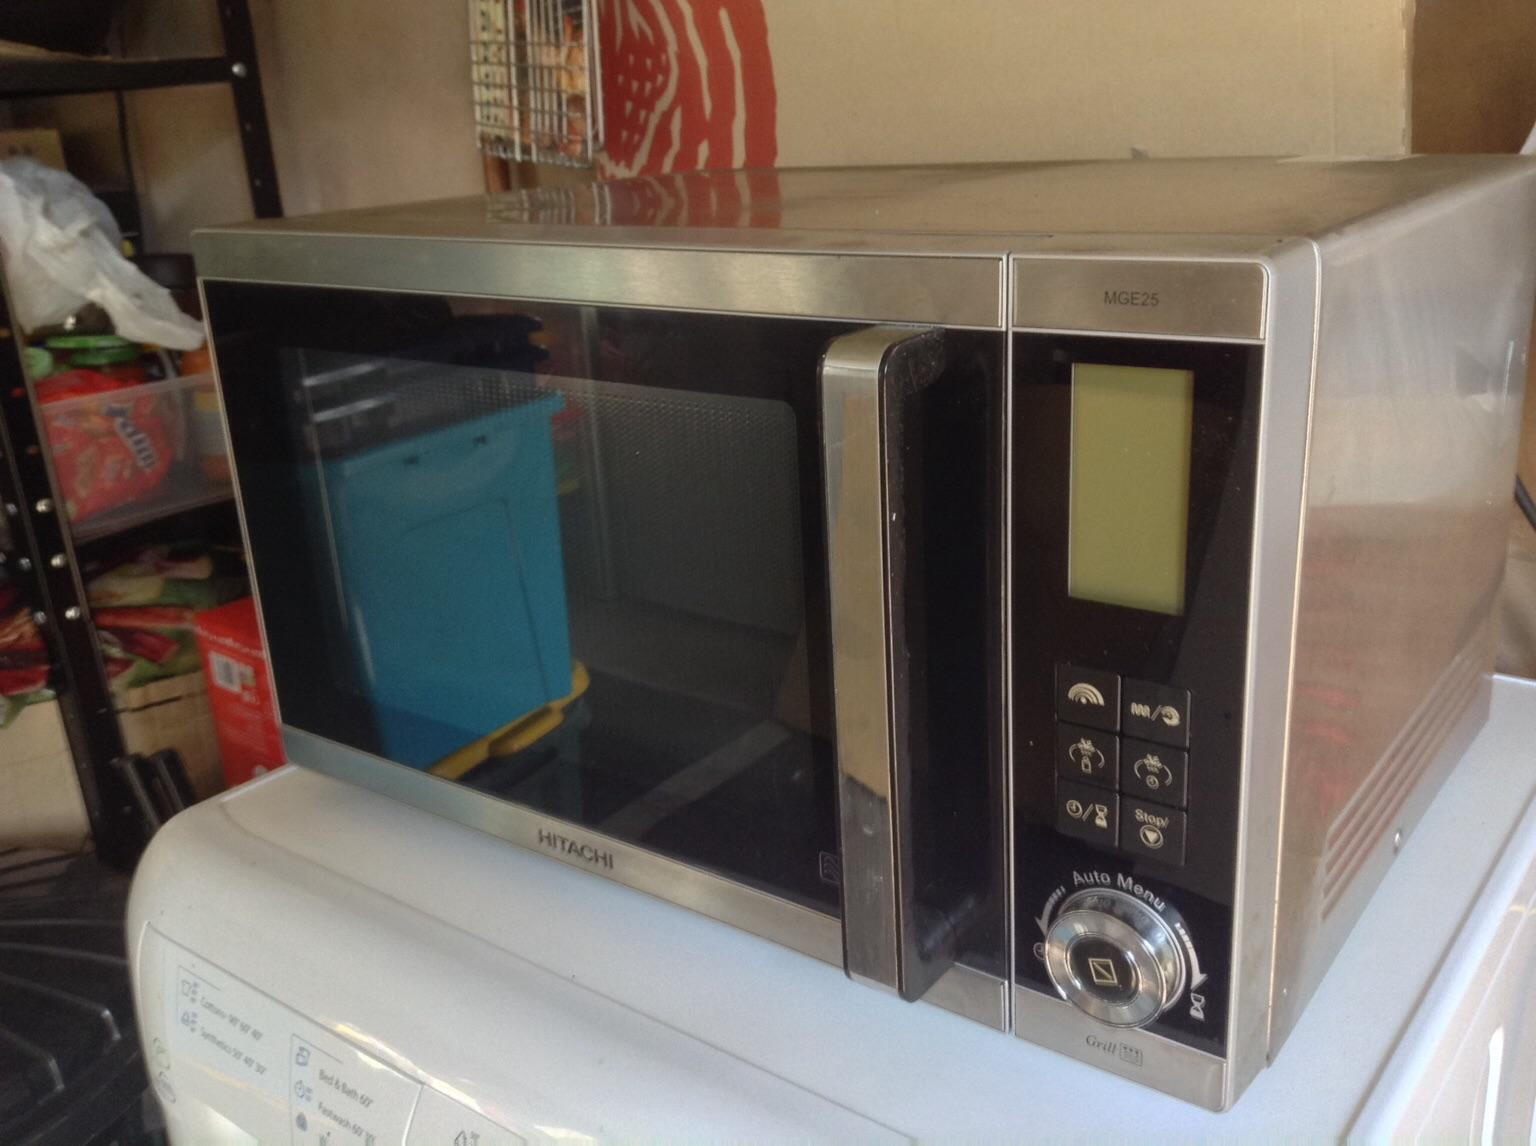 900W Hitachi MGE25 microwave grill in